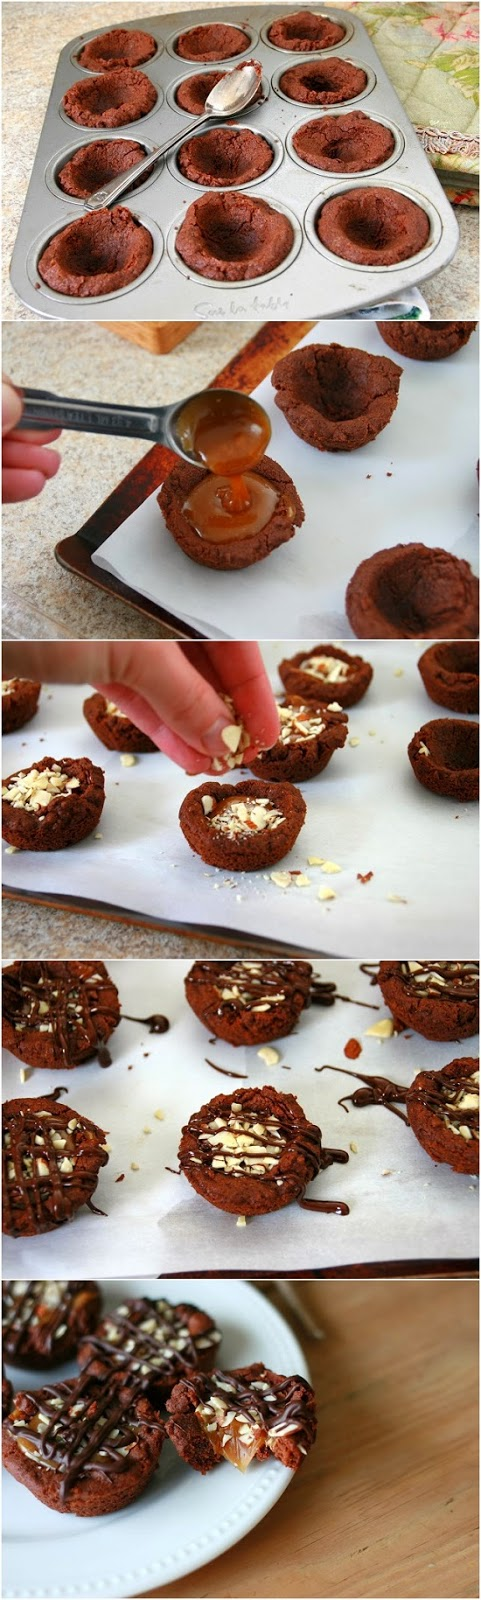 Salted-Caramel-Dark-Chocolate-Cookie-Cups-Recipe